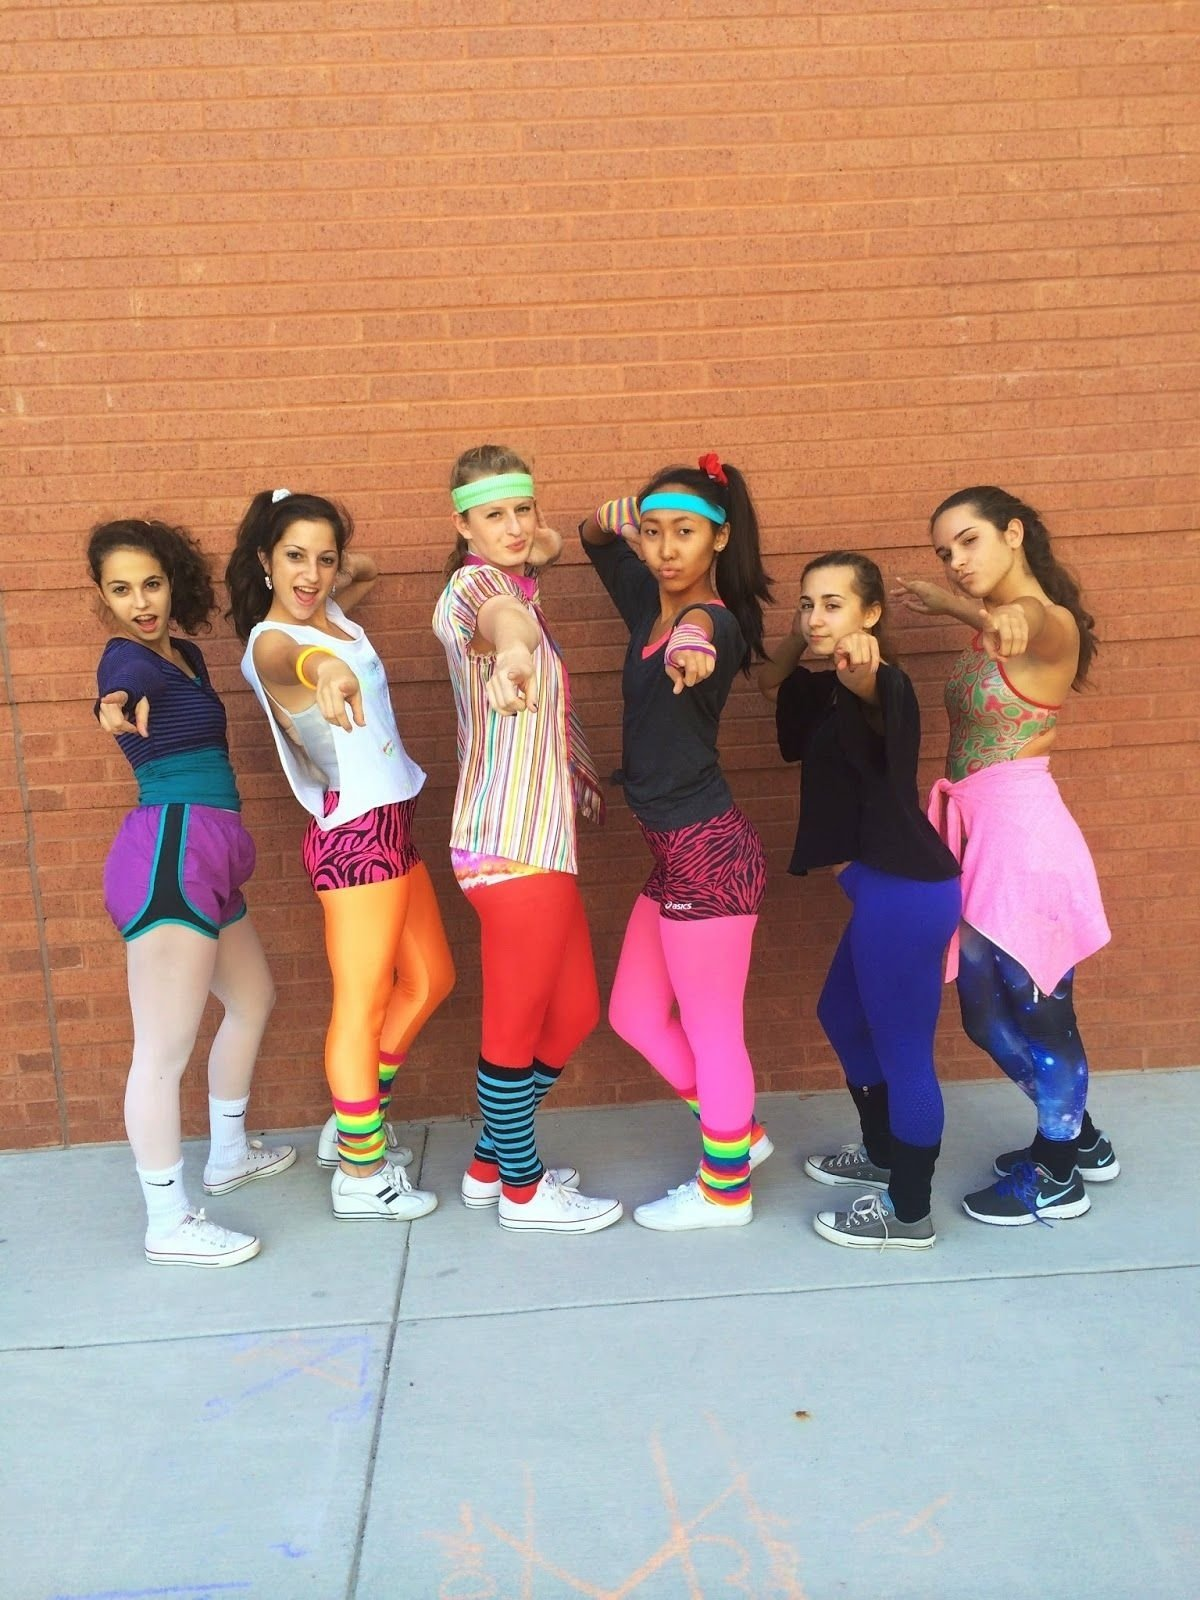 10 Stunning Dress Up Day Ideas For Work spirit day ideas spanish project pinterest spanish projects 2021